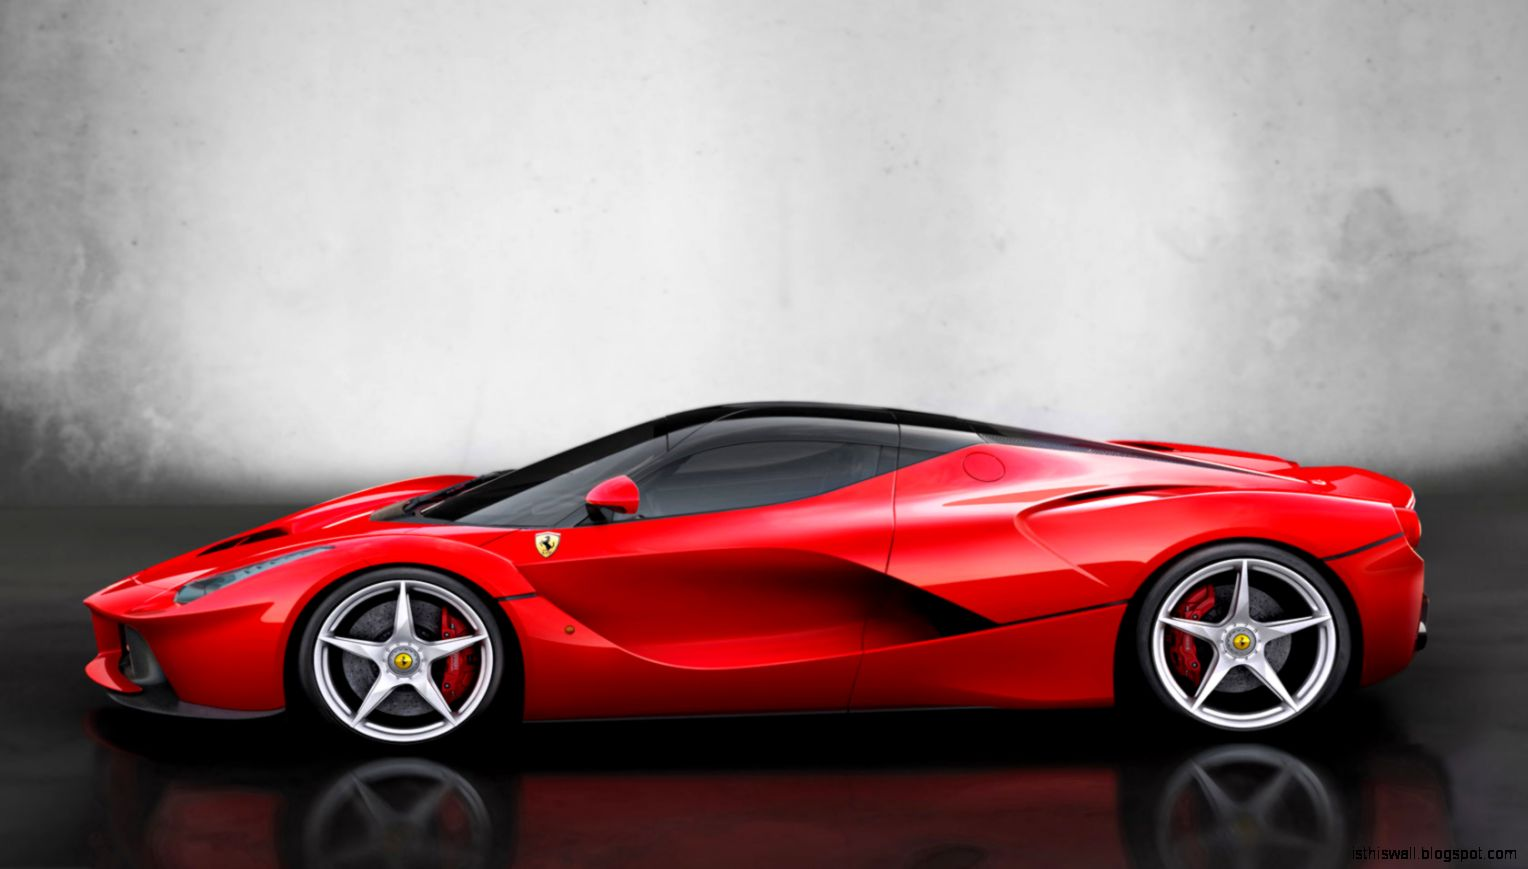 Ferrari LaFerrari Wallpaper » Infinite Garage